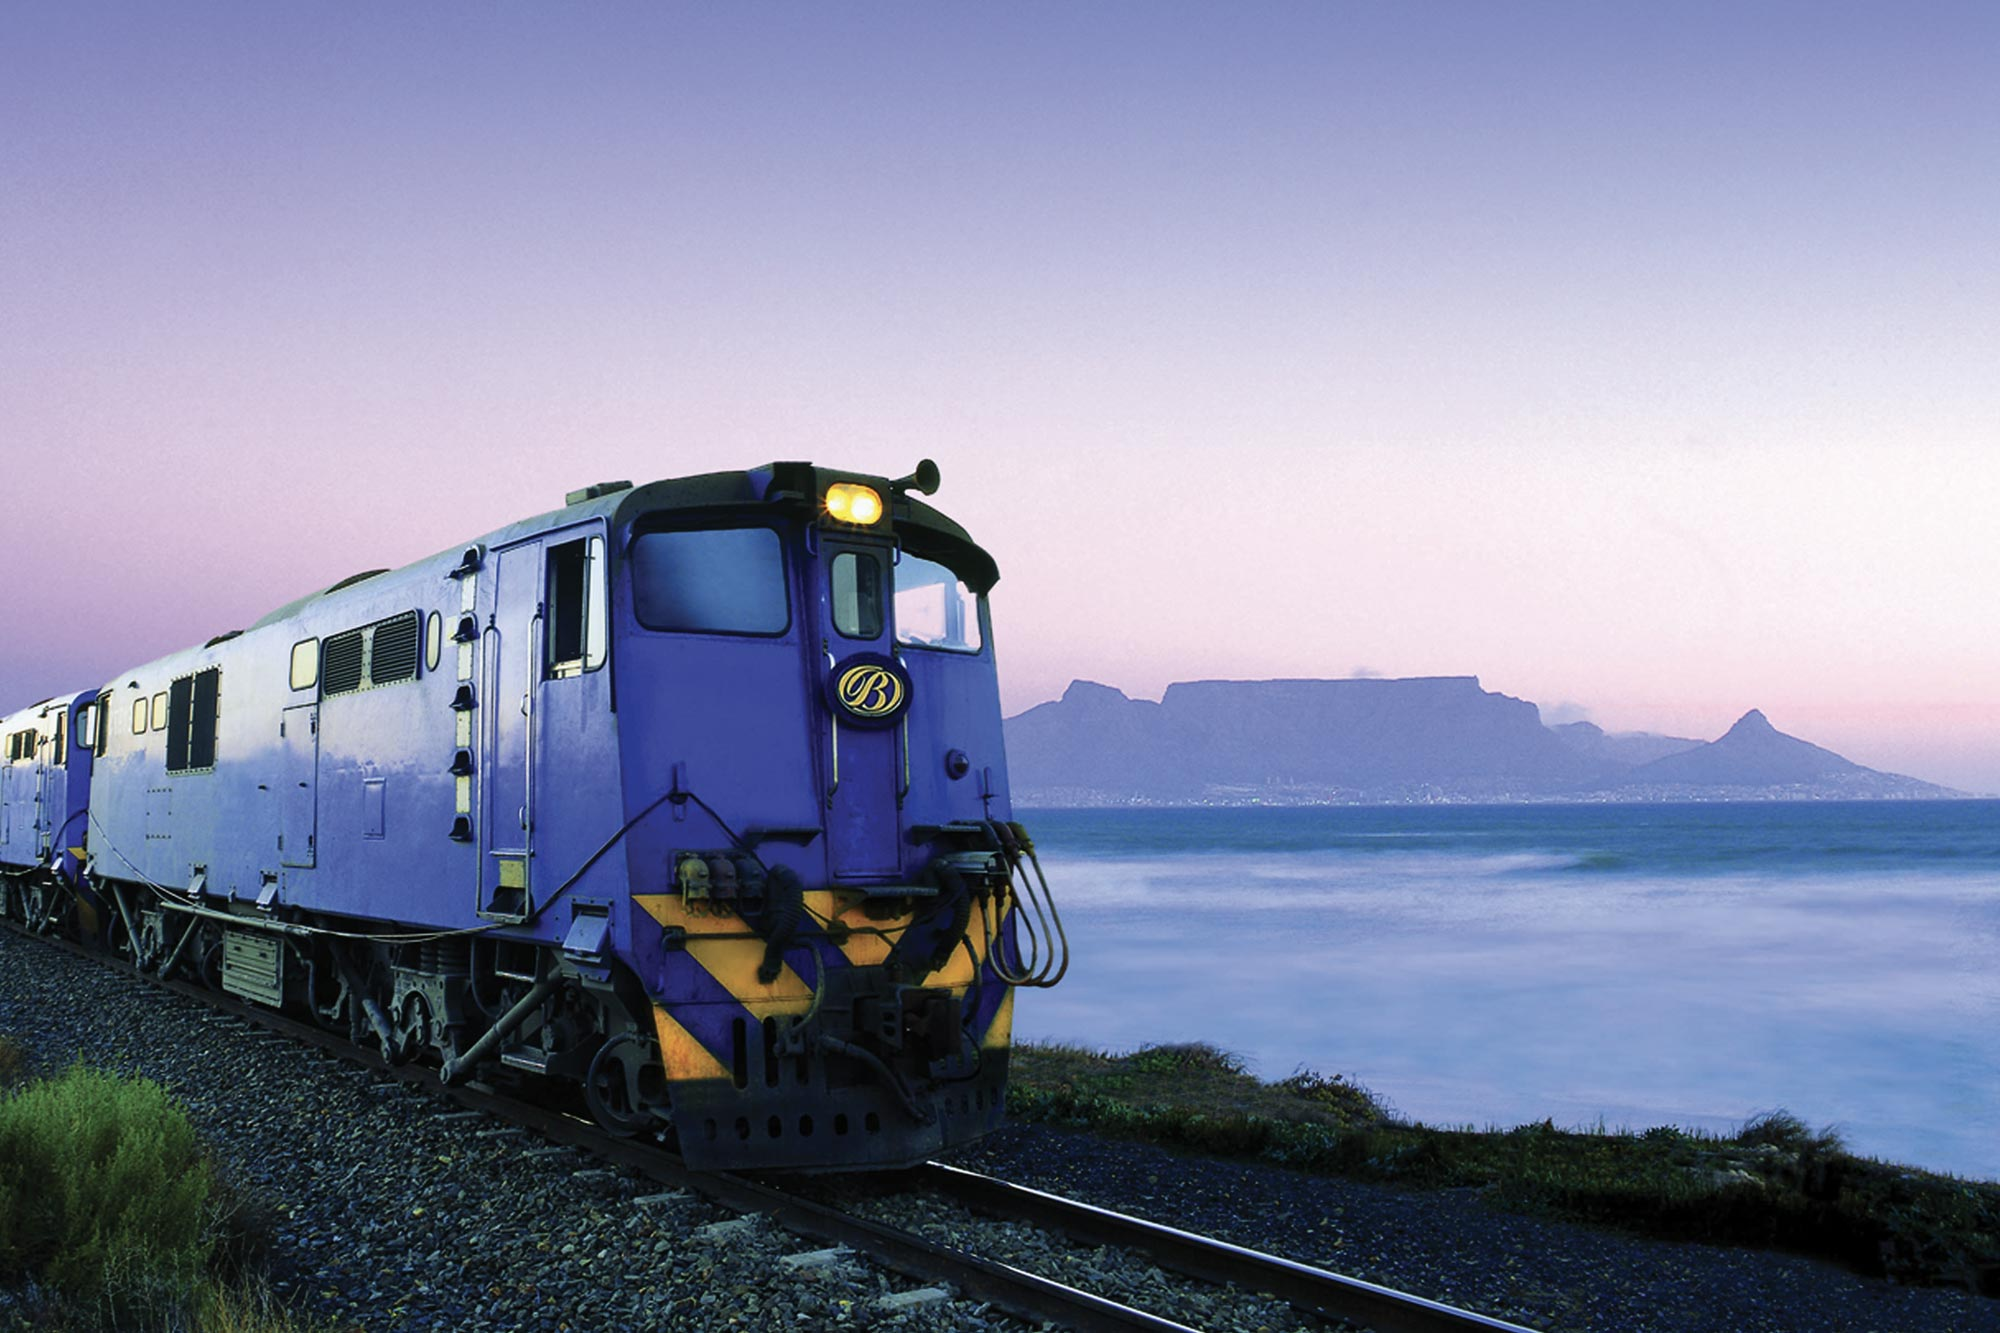 Cape Town, Winelands, Blue Train & Safari Holidays